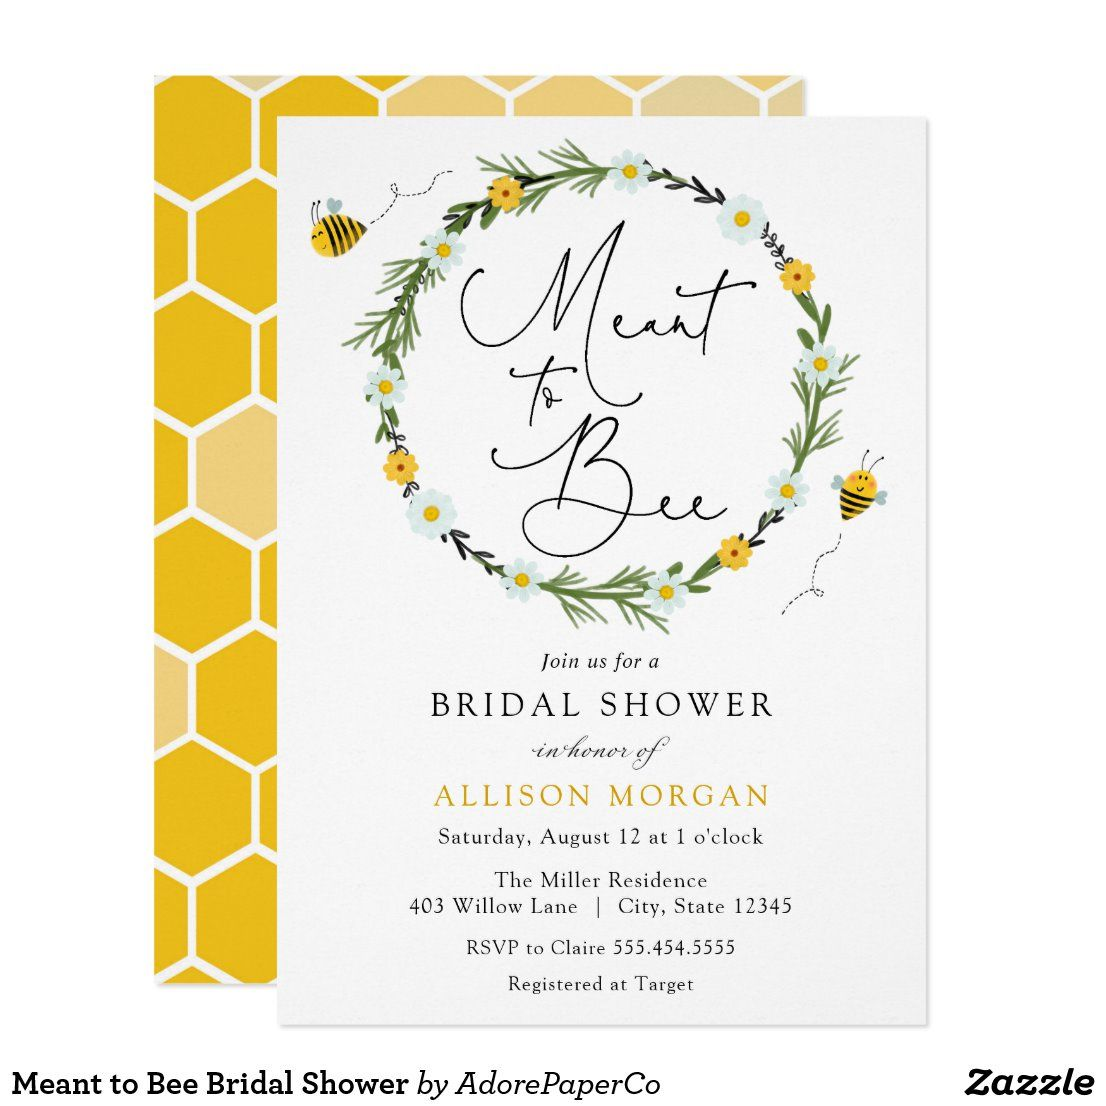 Meant To Bee Bridal Shower Invitation Zazzle Com In 2020 Wedding Shower Themes Bee Wedding Bee Wedding Theme